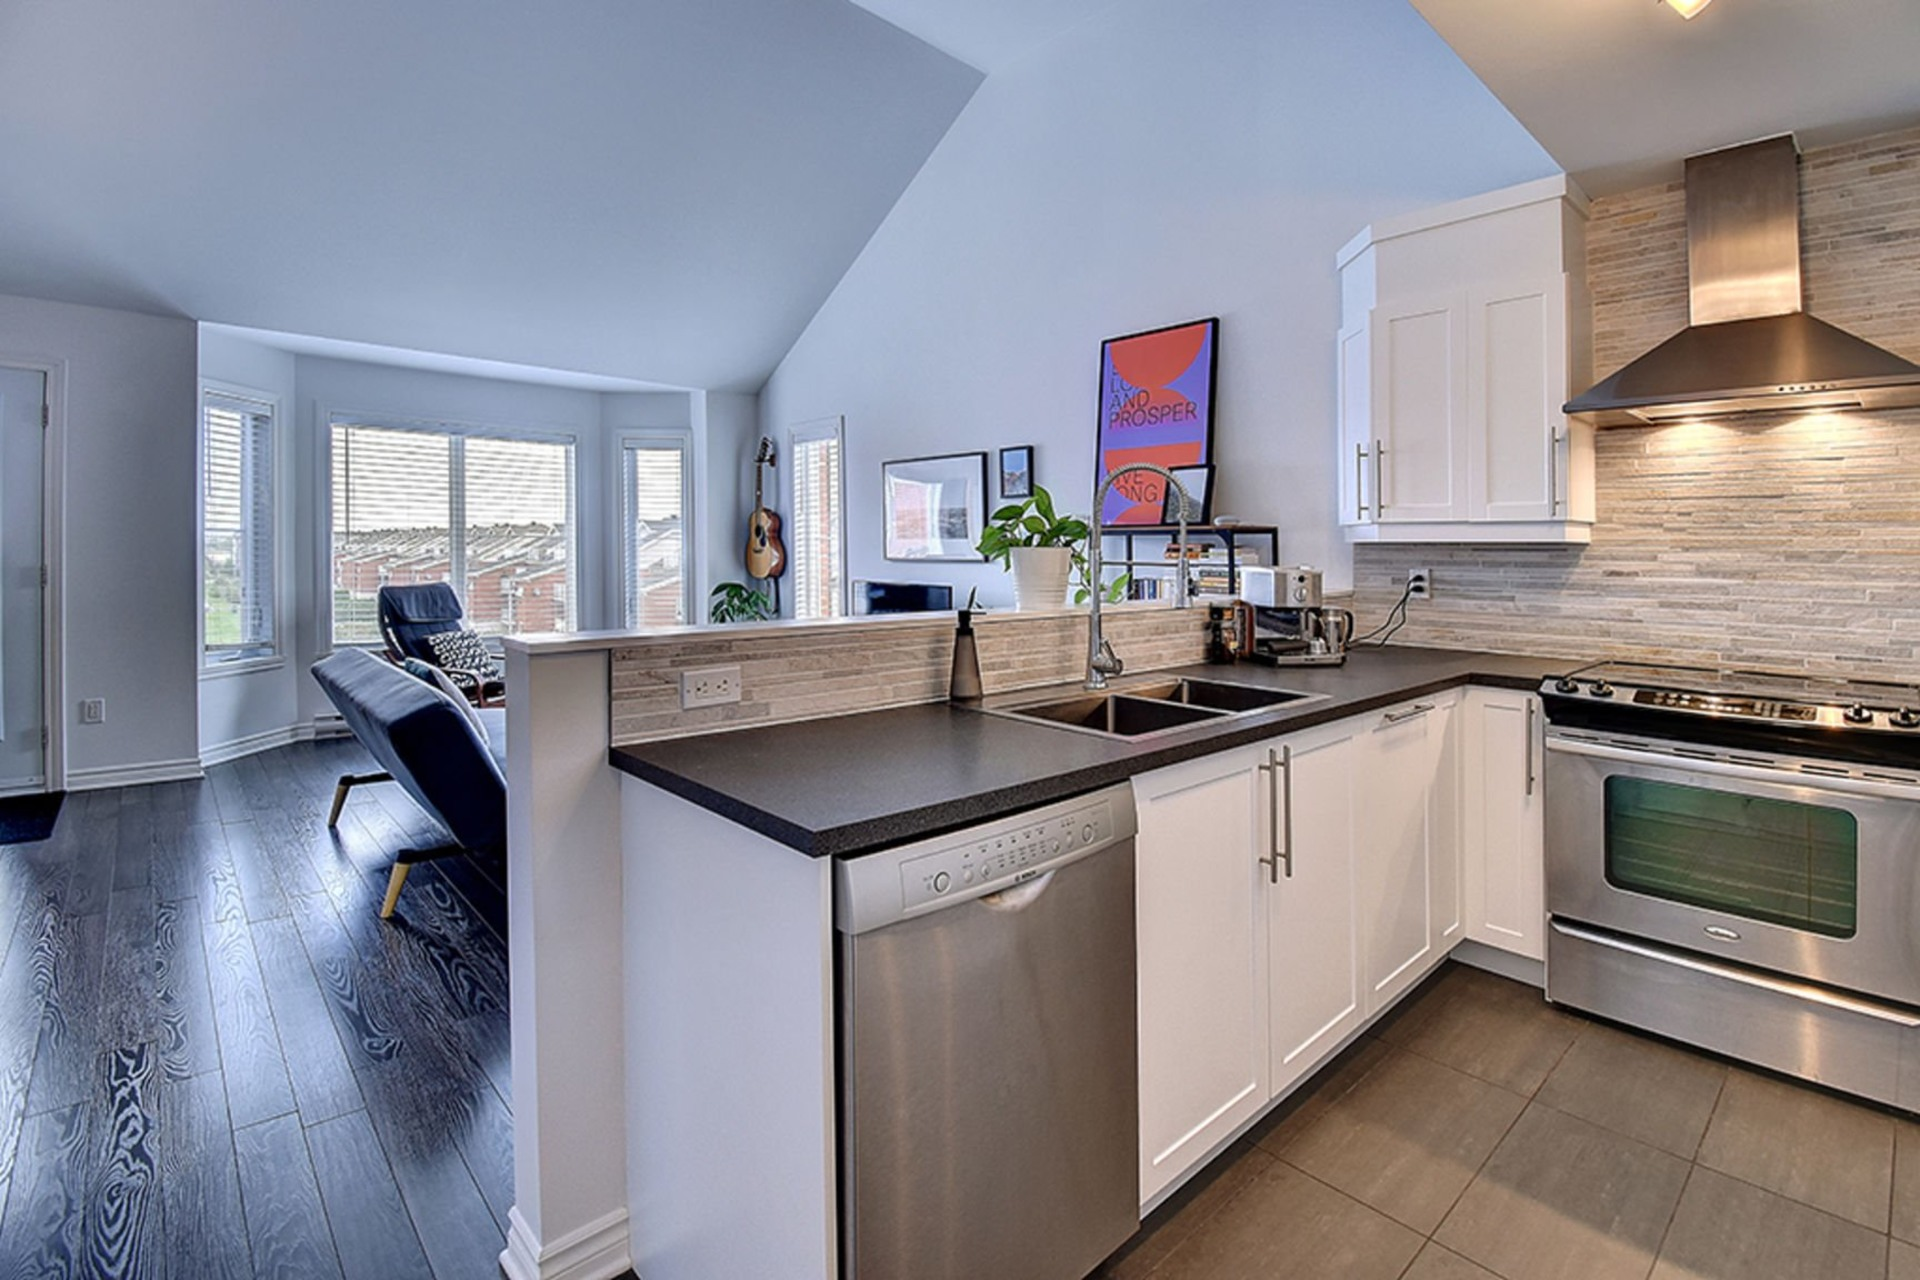 image 7 - Apartment For sale Brossard - 5 rooms